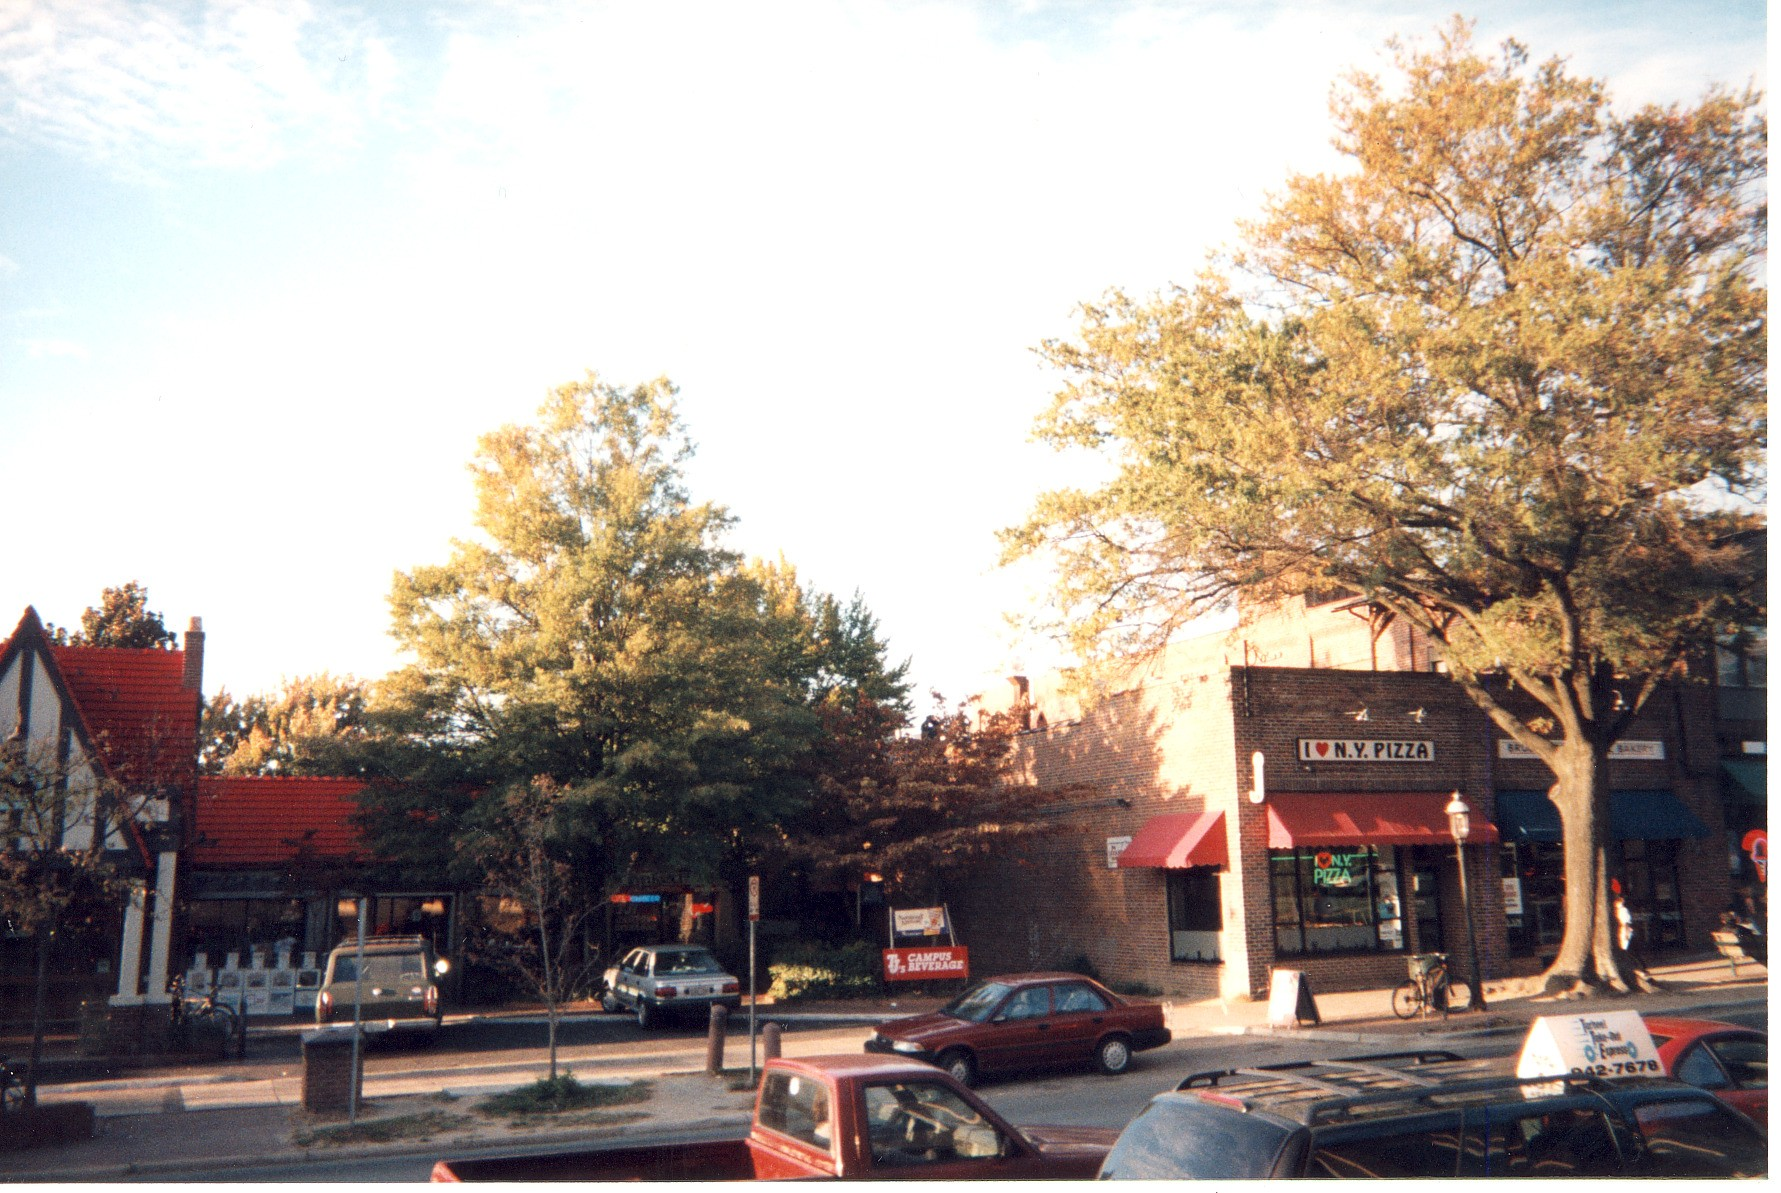 Photo taken on a sunny, fall day from the opposite side of the street of several shops on West Franklin Street, Chapel Hill, North Carolina. I Love N.Y. Pizza and TJ's Campus Beverage are visible.